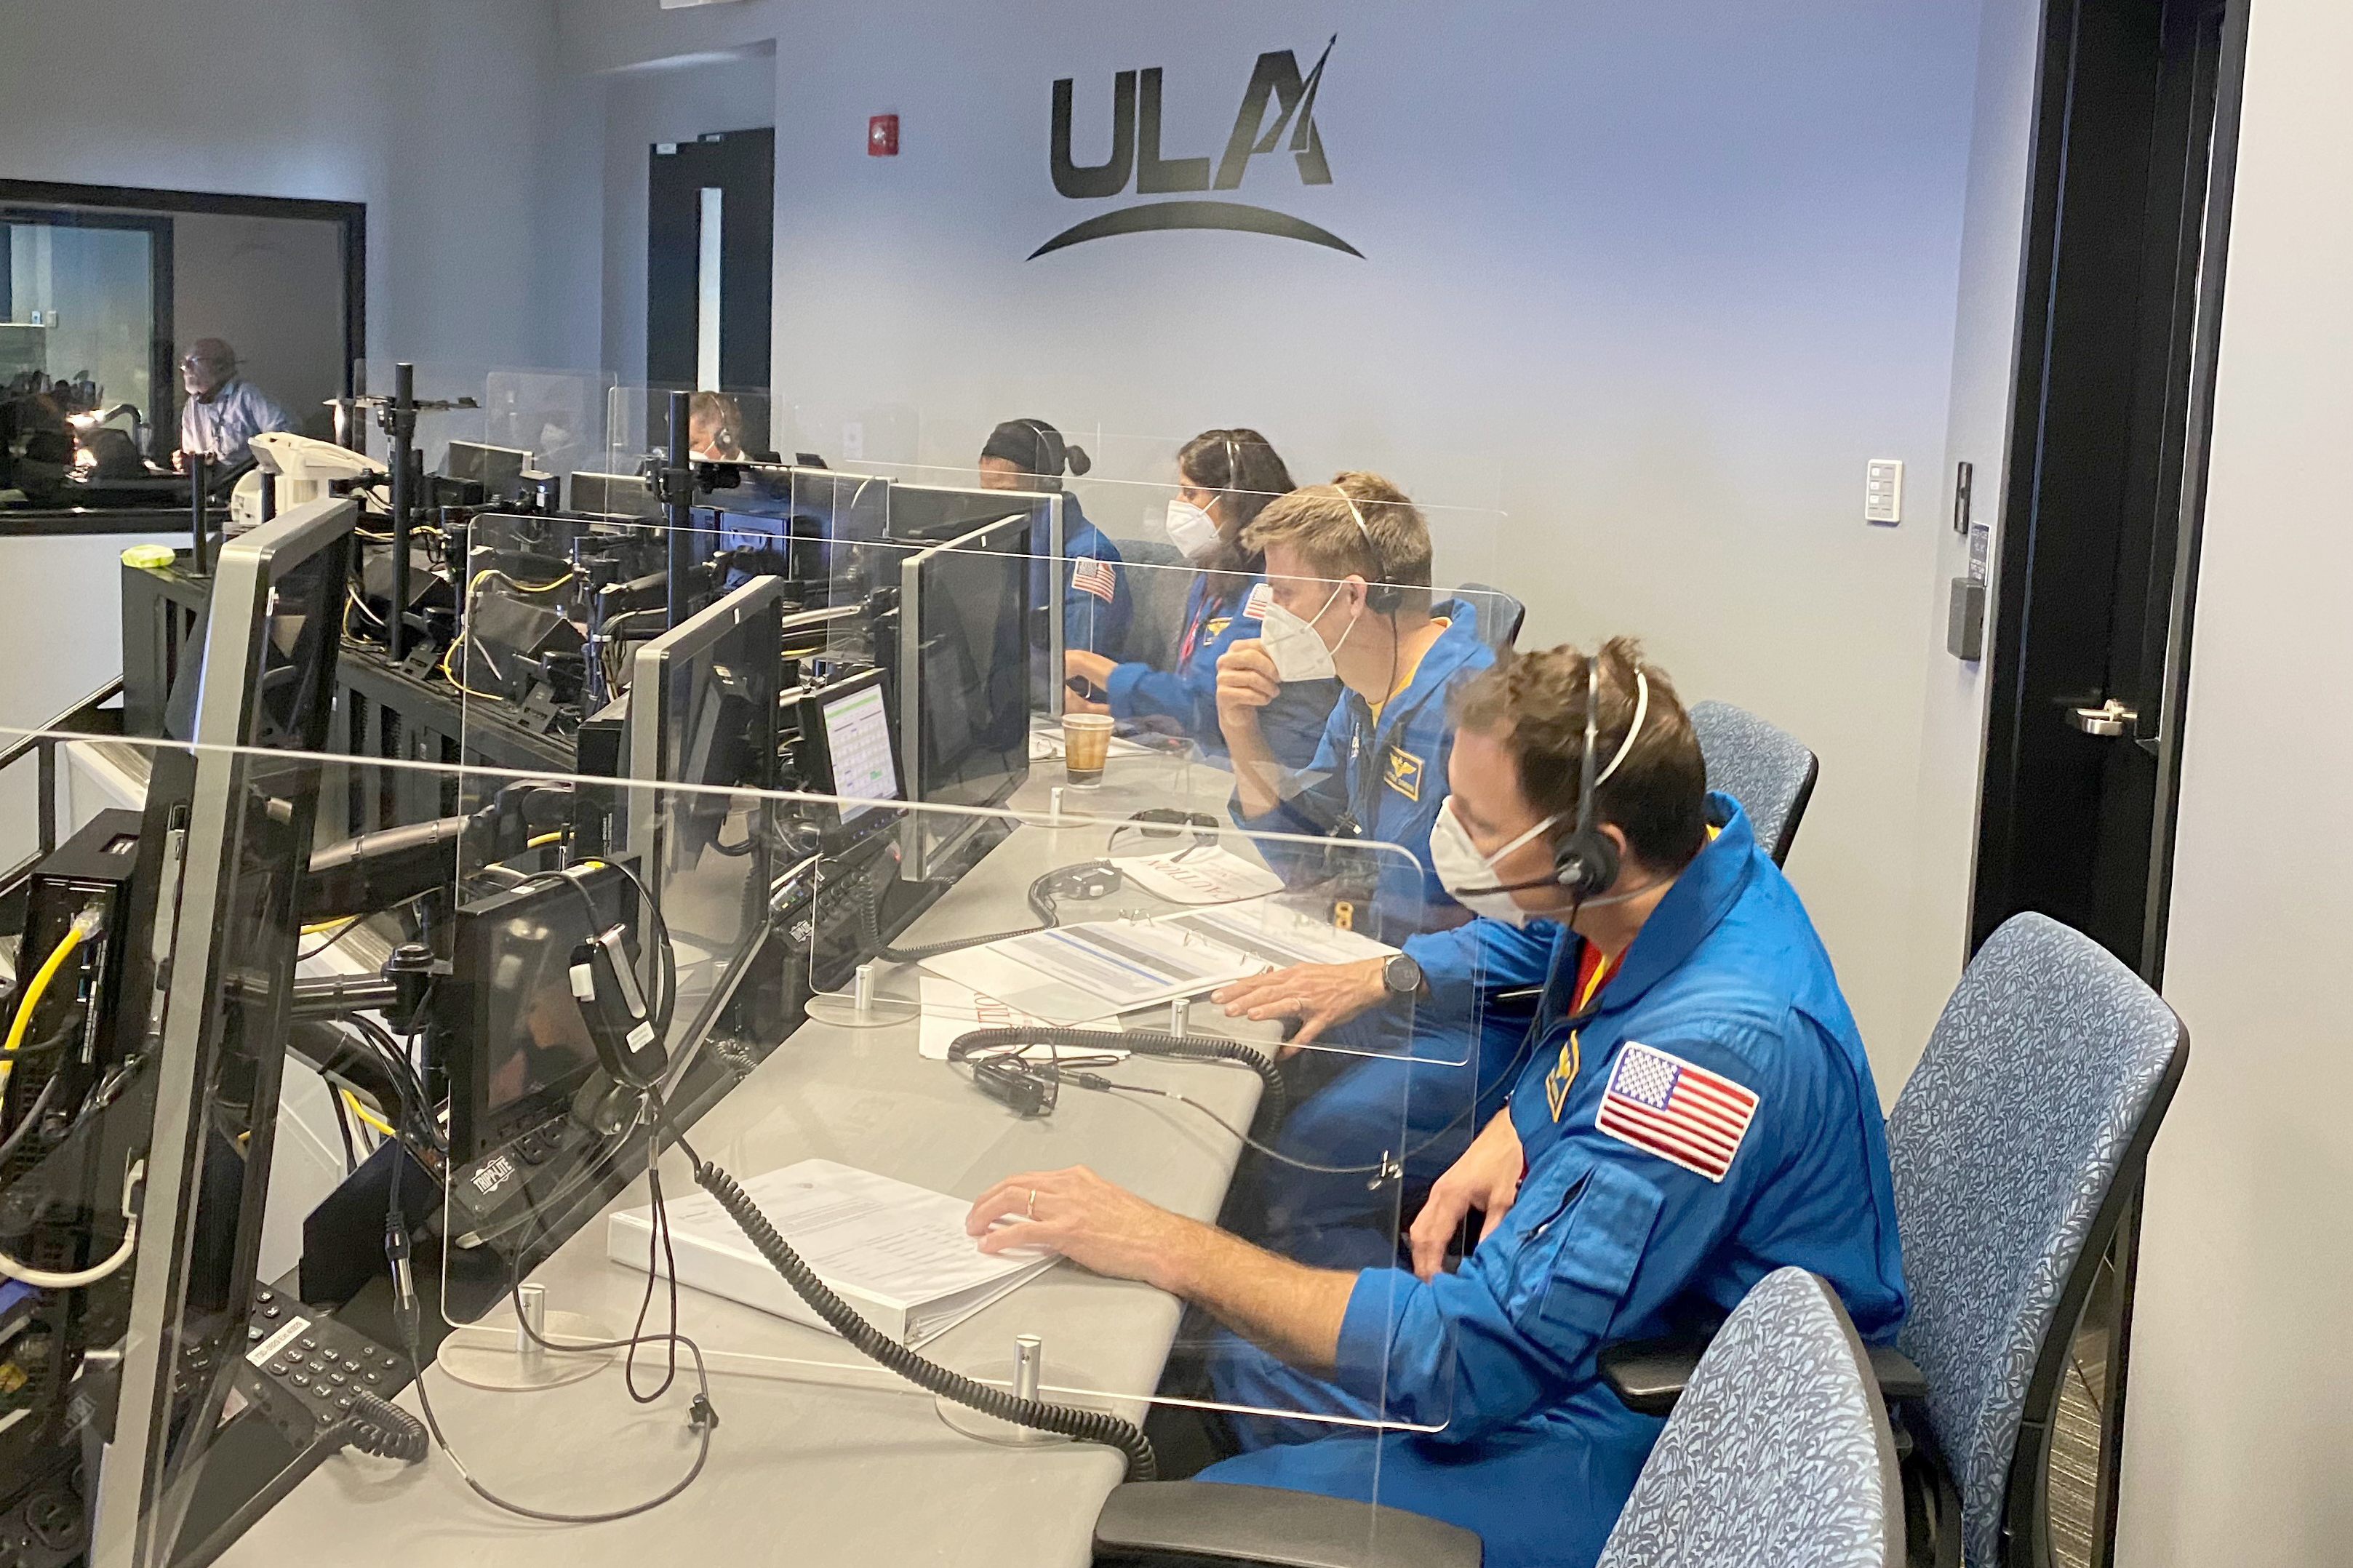 Astronauts participate from the ASOC. Photo by United Launch Alliance